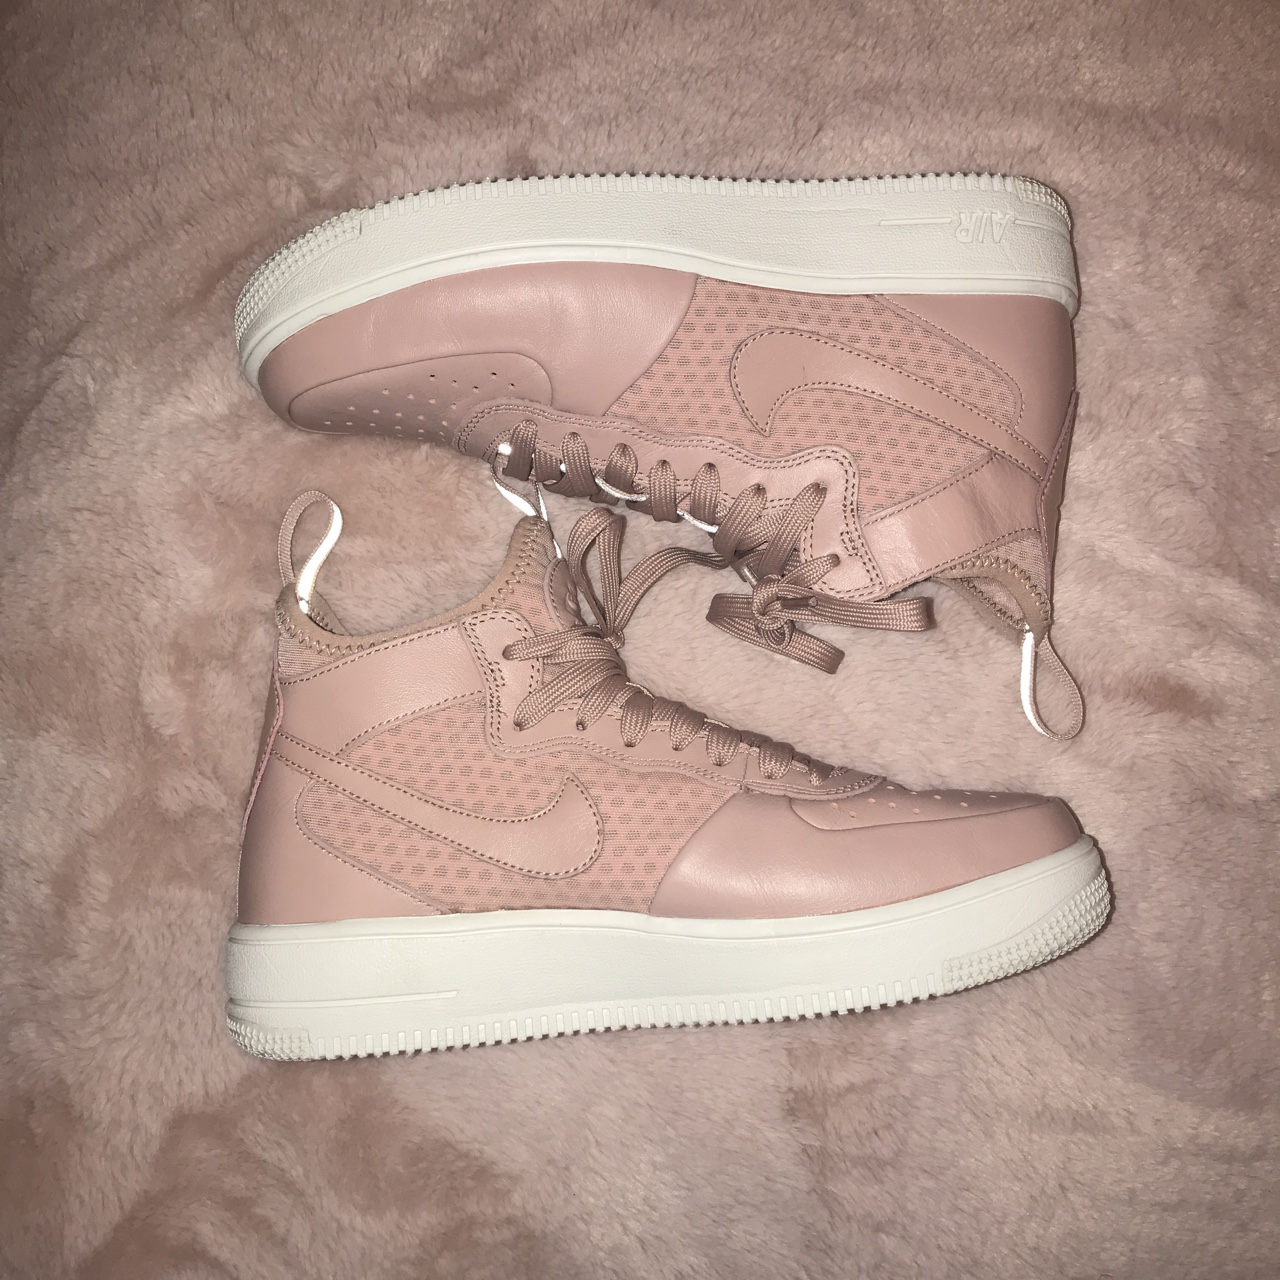 NIKE air rose gold high tops Only worn